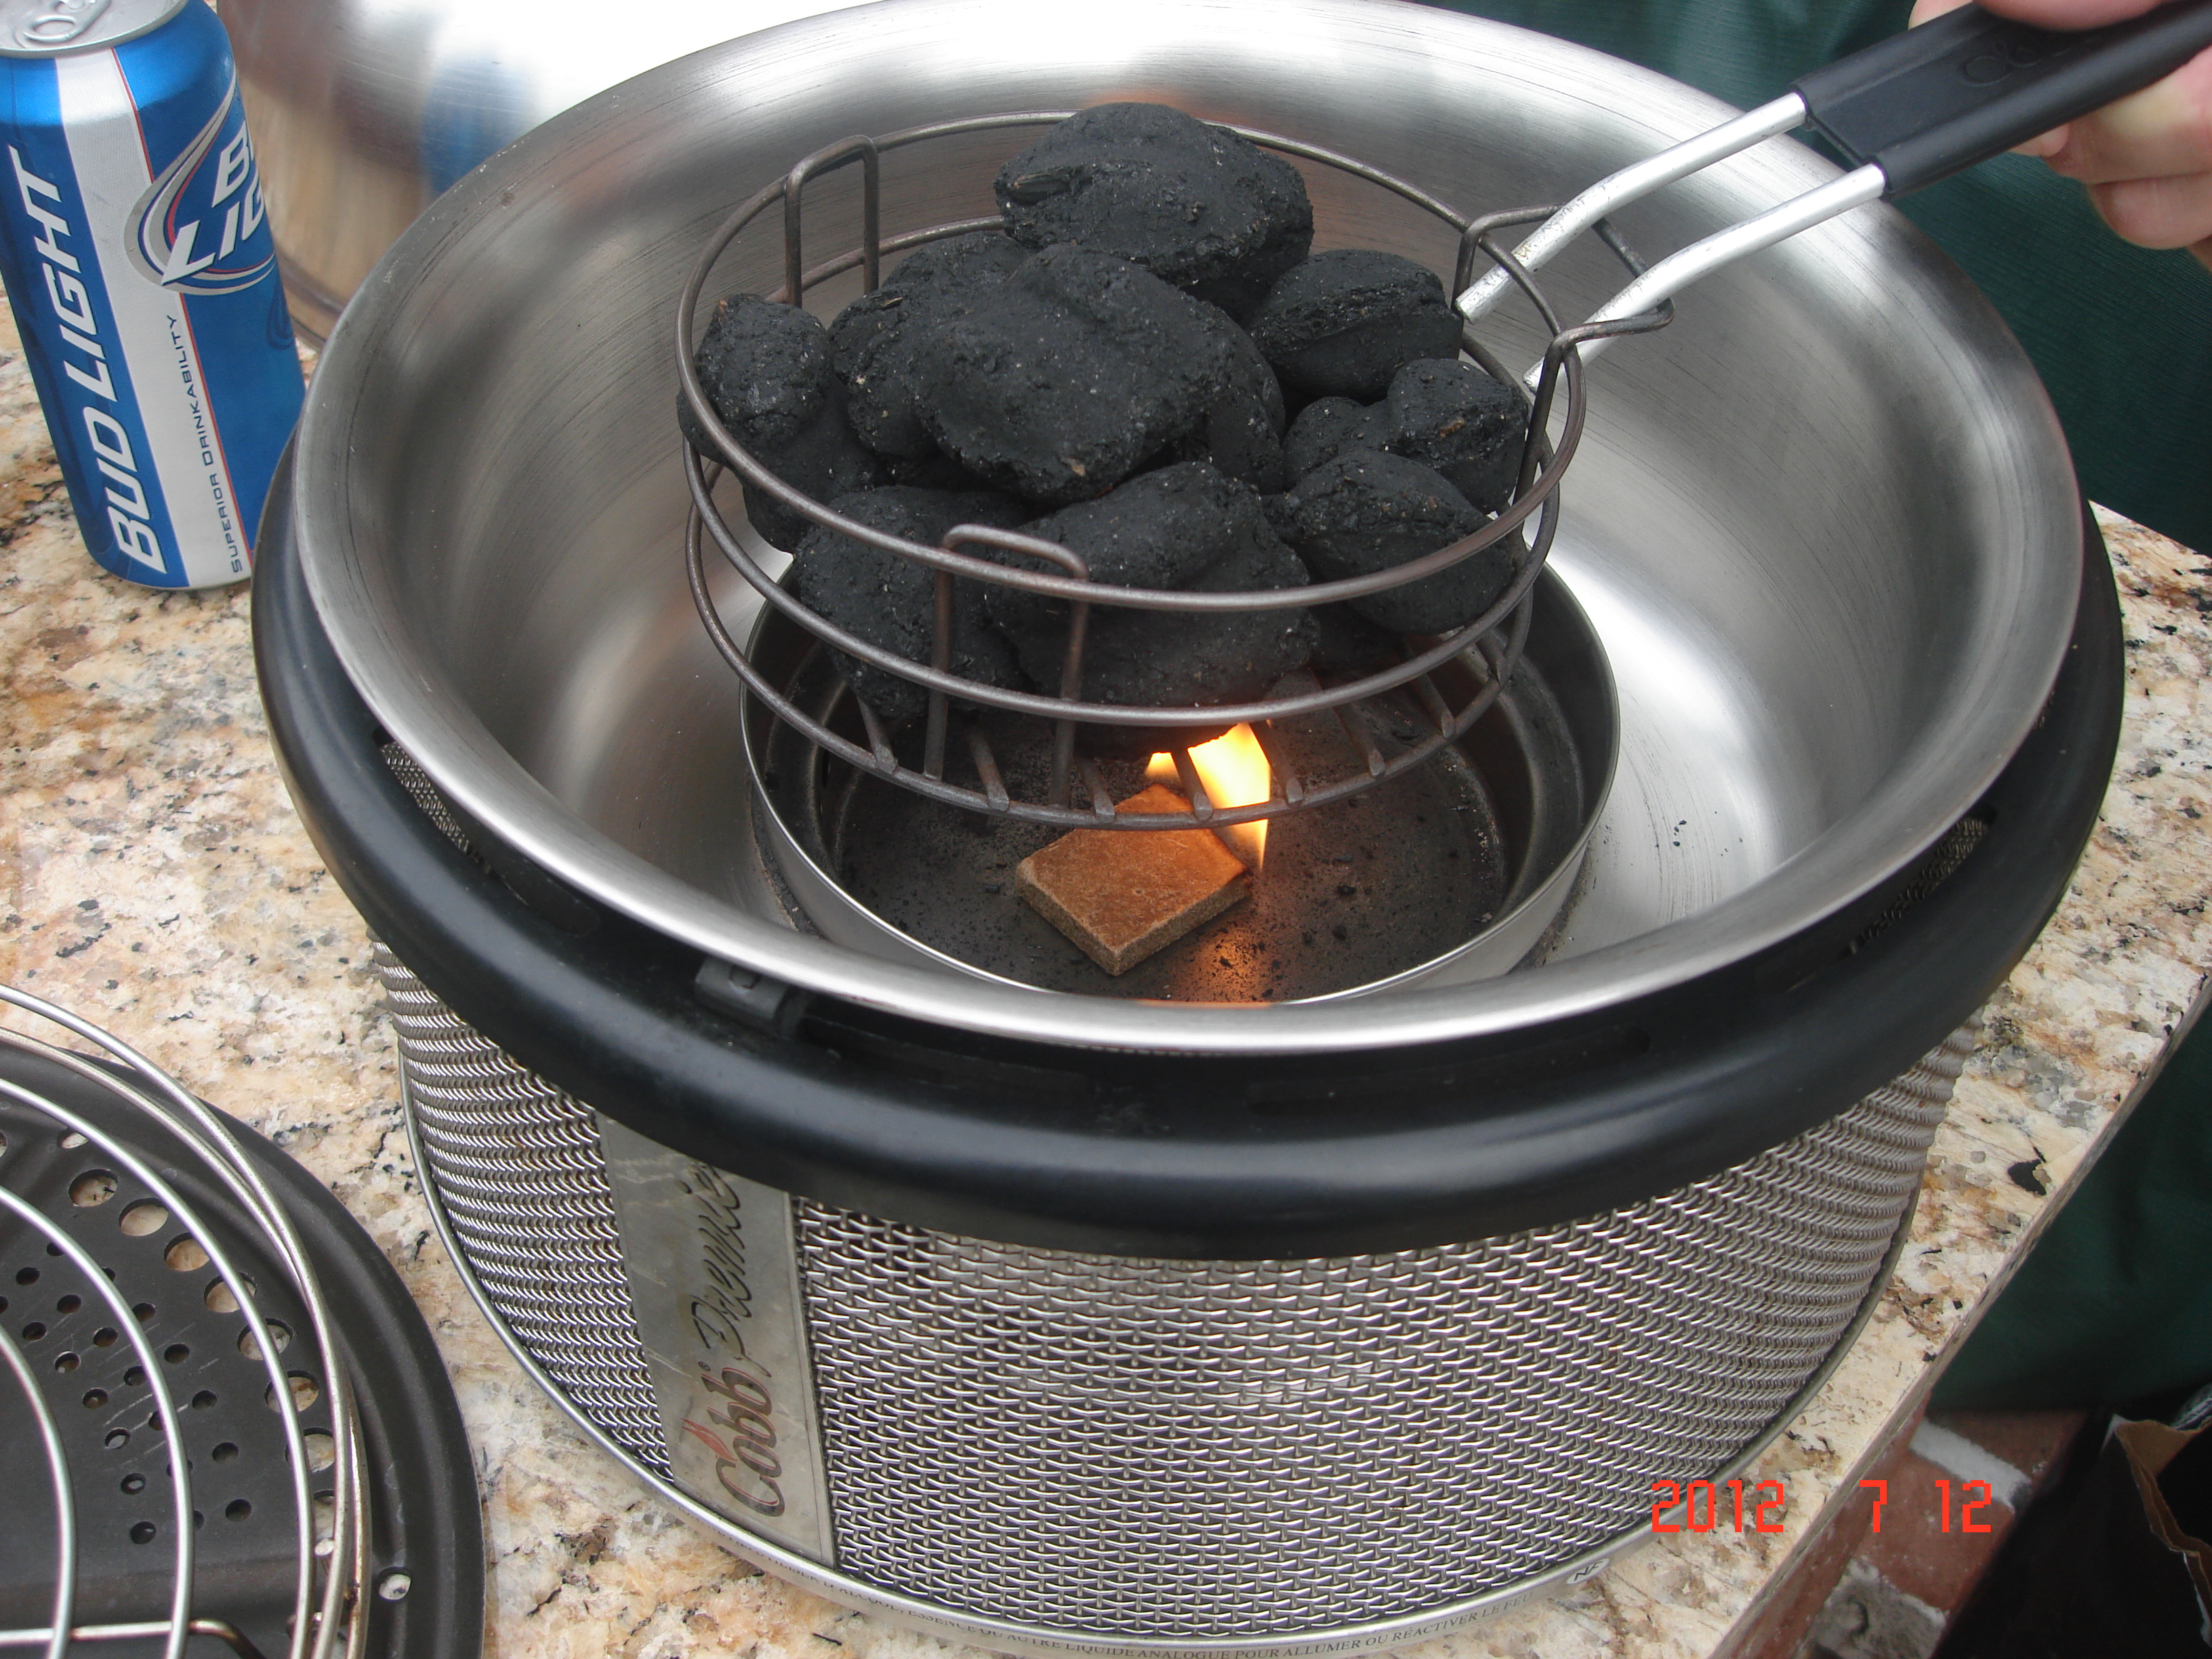 Charcoal Briquettes In A Pan